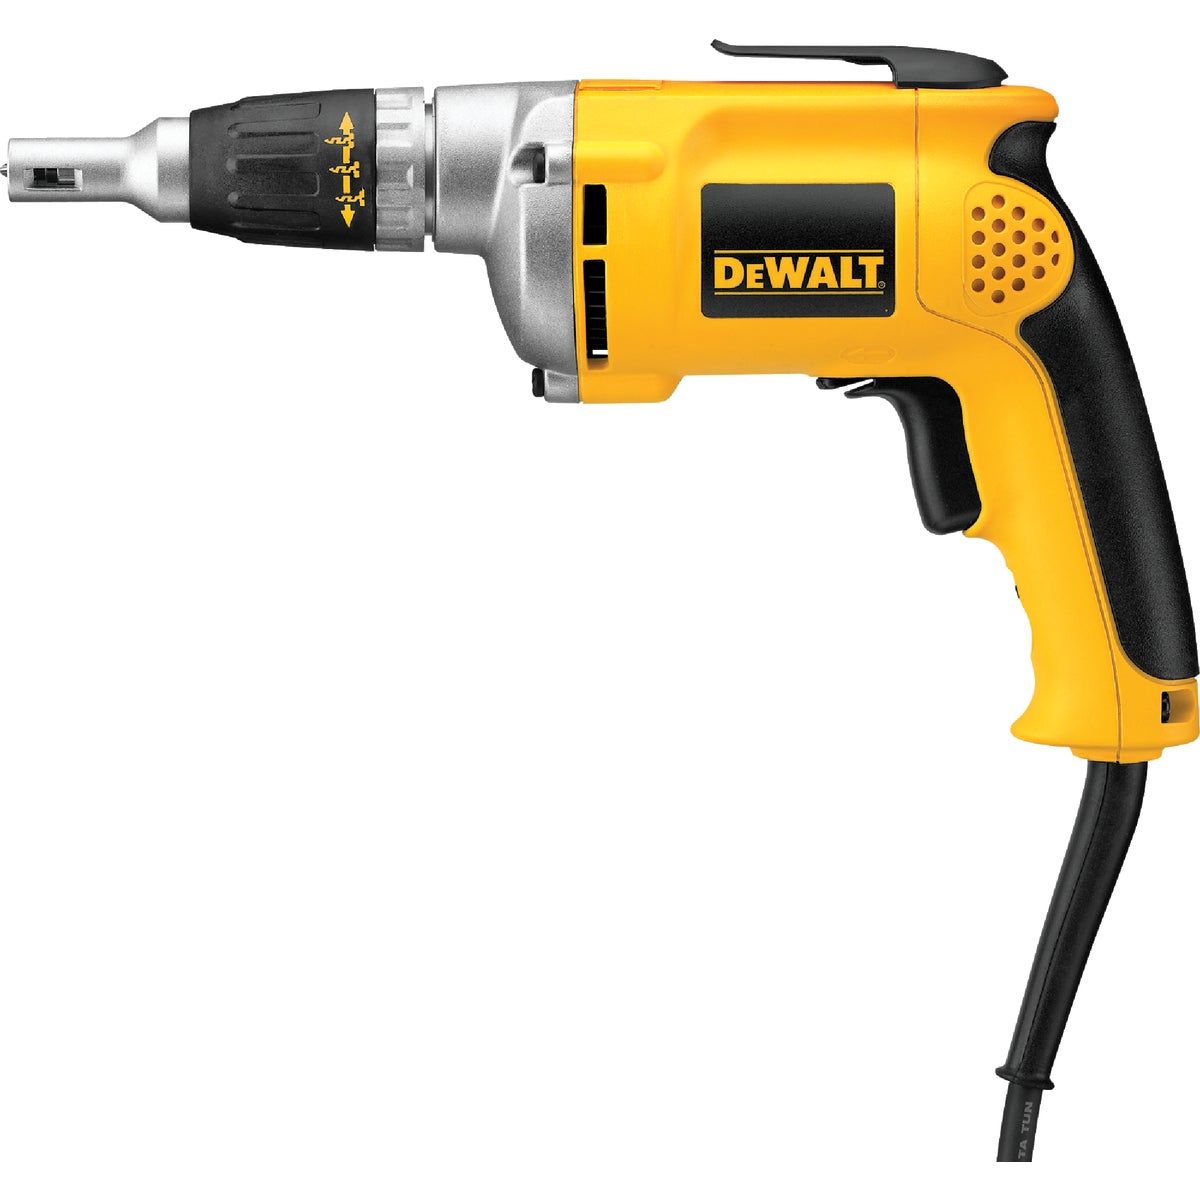 6.3A DRYWALL SCREWDRIVER - DW272 by DeWalt